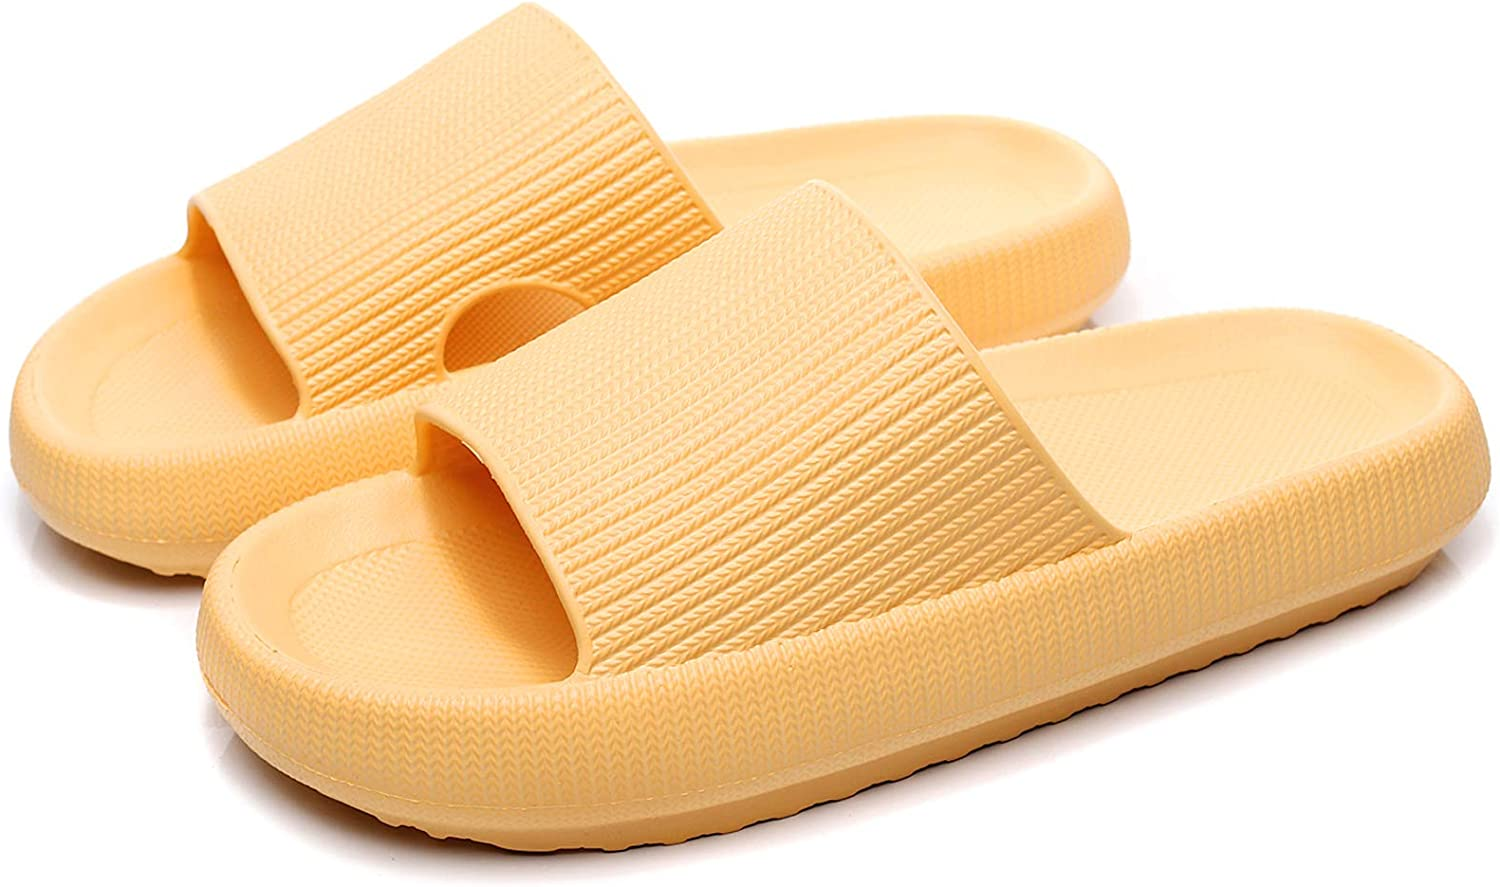 ERLINGO Pillow Slides Slippers Ultra-Soft Slippers Bathroom Non-Slip Thick Soled Shoes Quick Dry Platform Shower Slides Super Soft Home Pillow Slides for Women and Men Casual Style